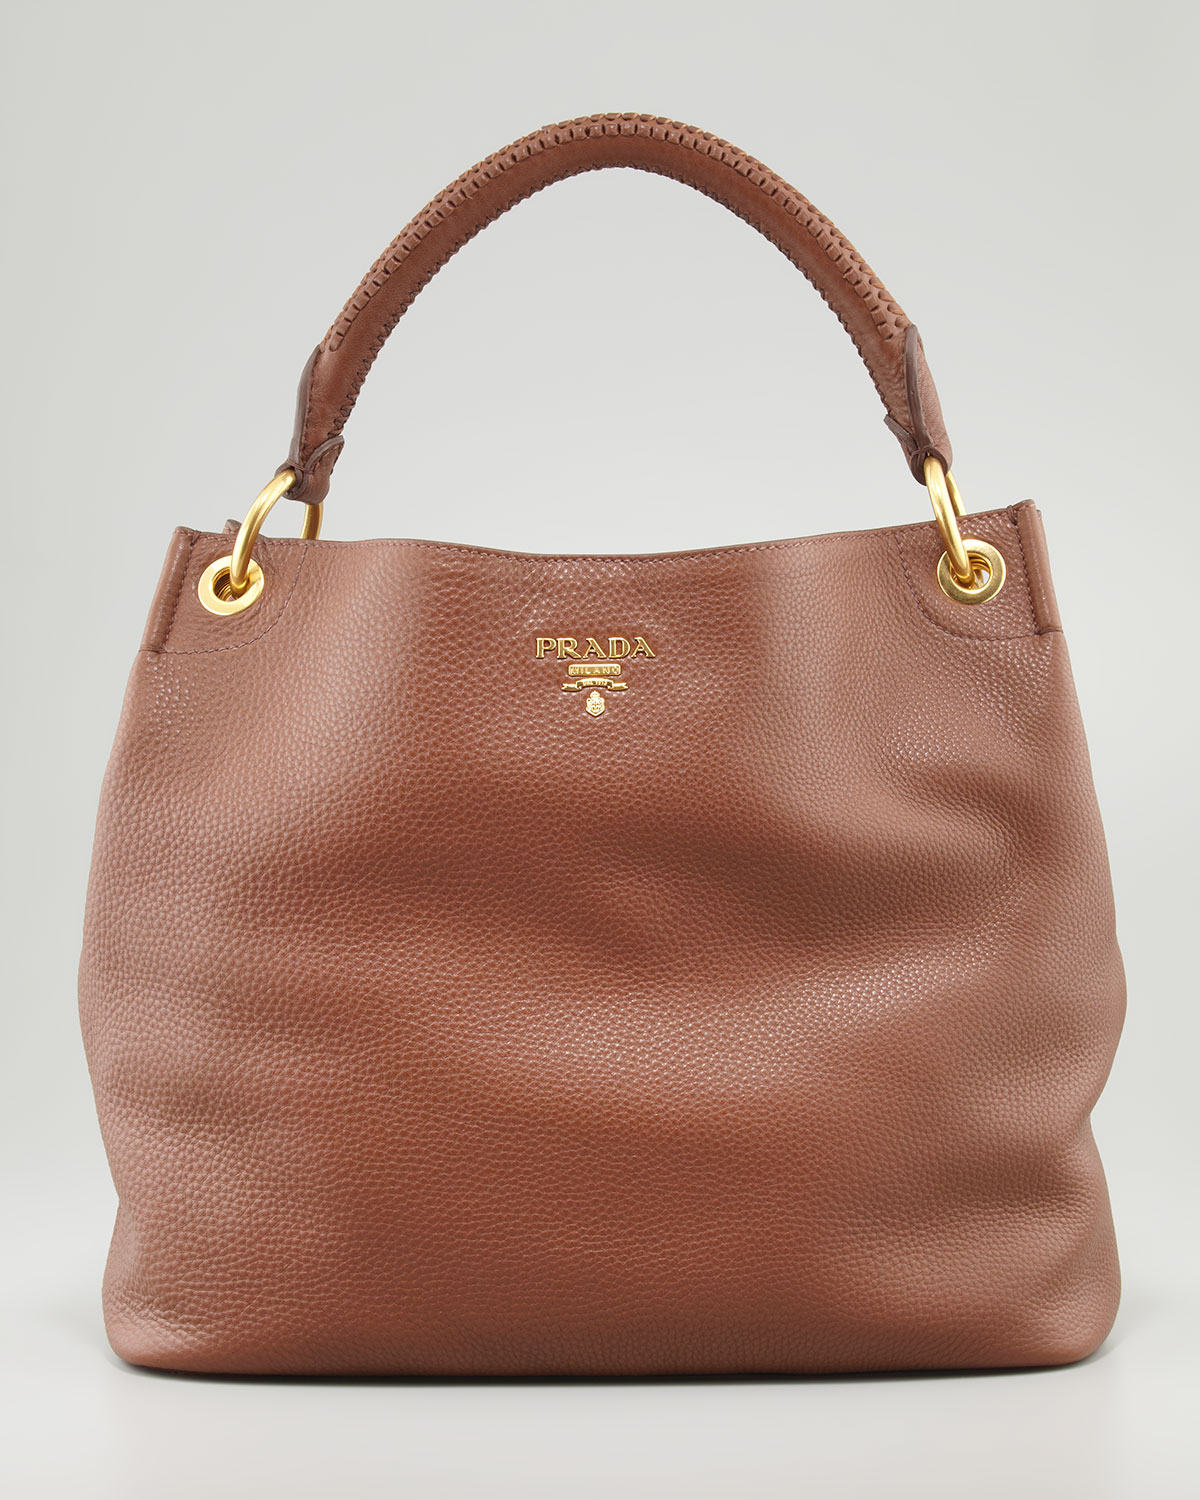 a70108c93ac2 ... usa lyst prada daino woven handle hobo bag in brown 9e45f 9bba6